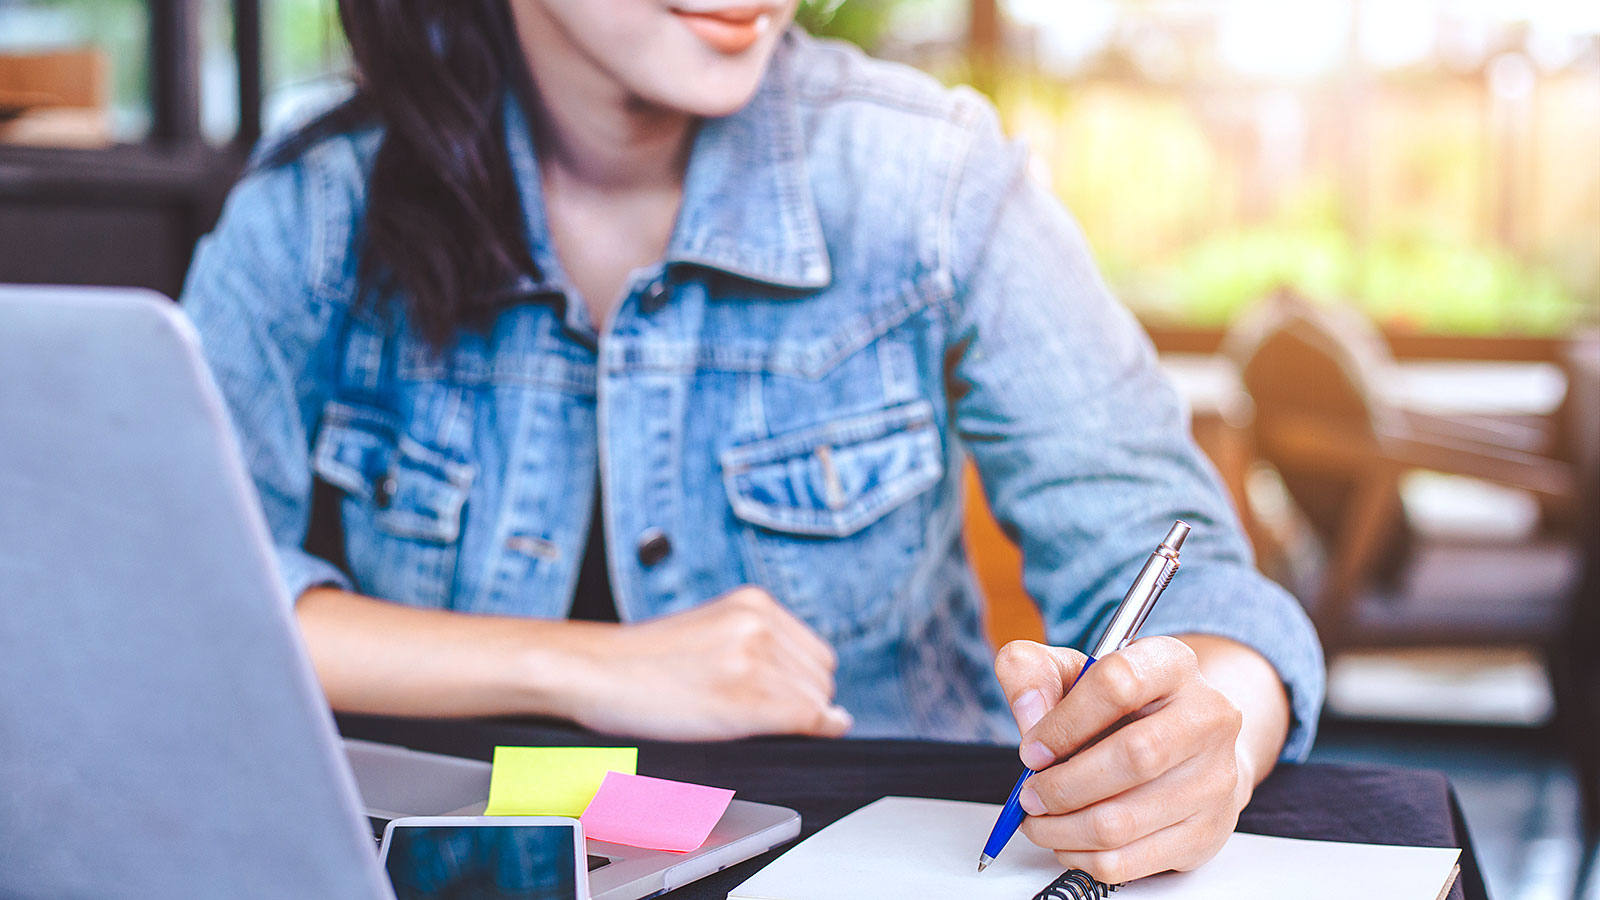 If you're left-handed, this is the day you will be most productive